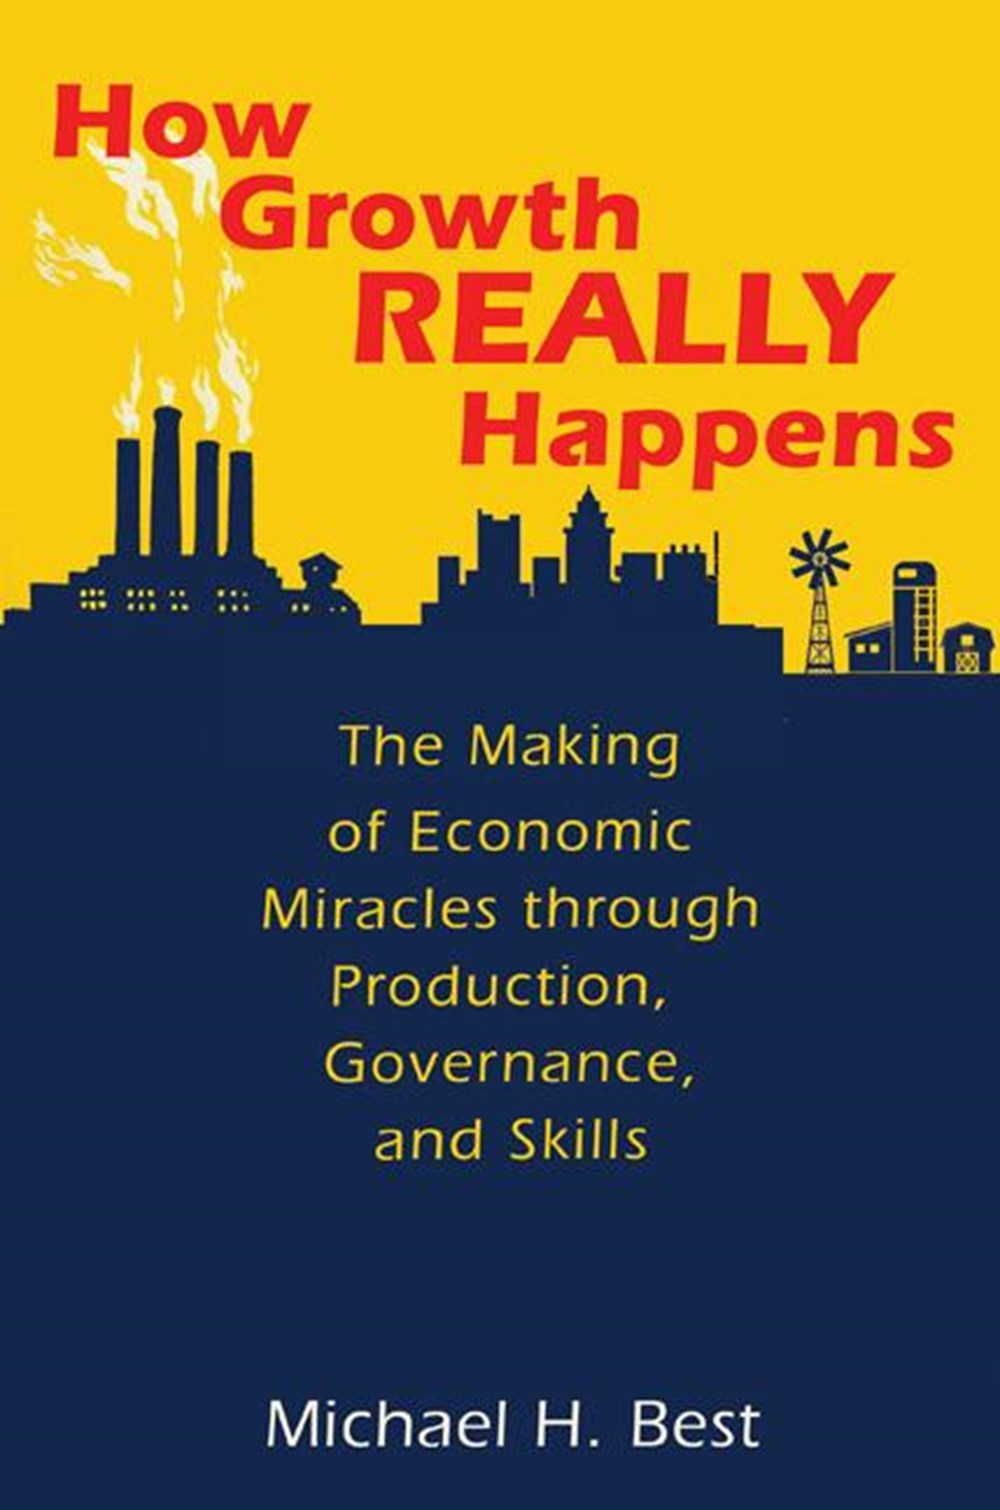 How Growth Really Happens: The Making of Economic Miracles Through Production, Governance, and Skill